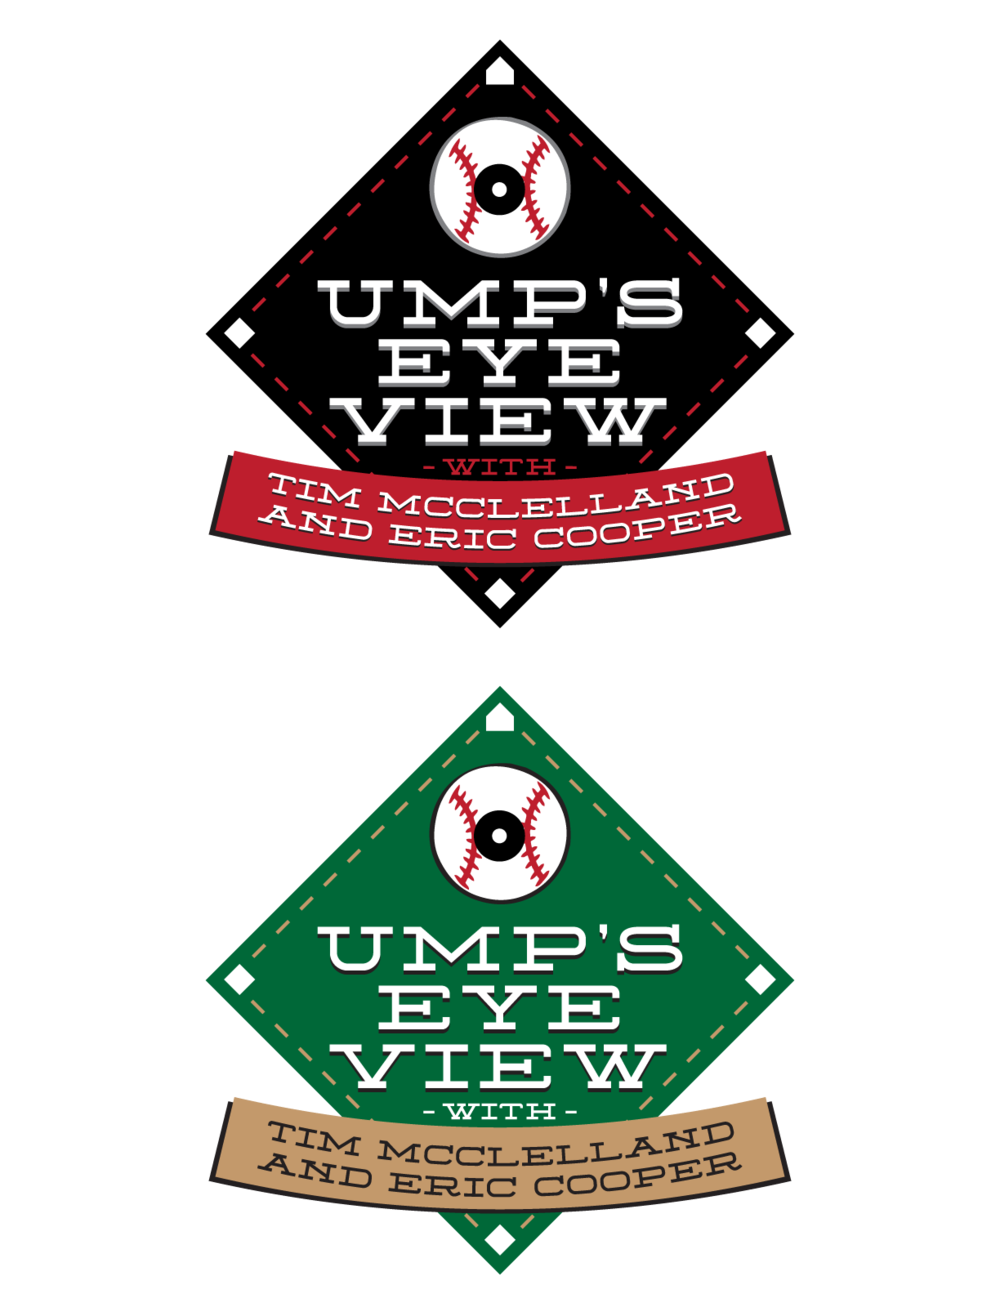 Ump's Eye View logo for a radio show at Rockstar Satellite